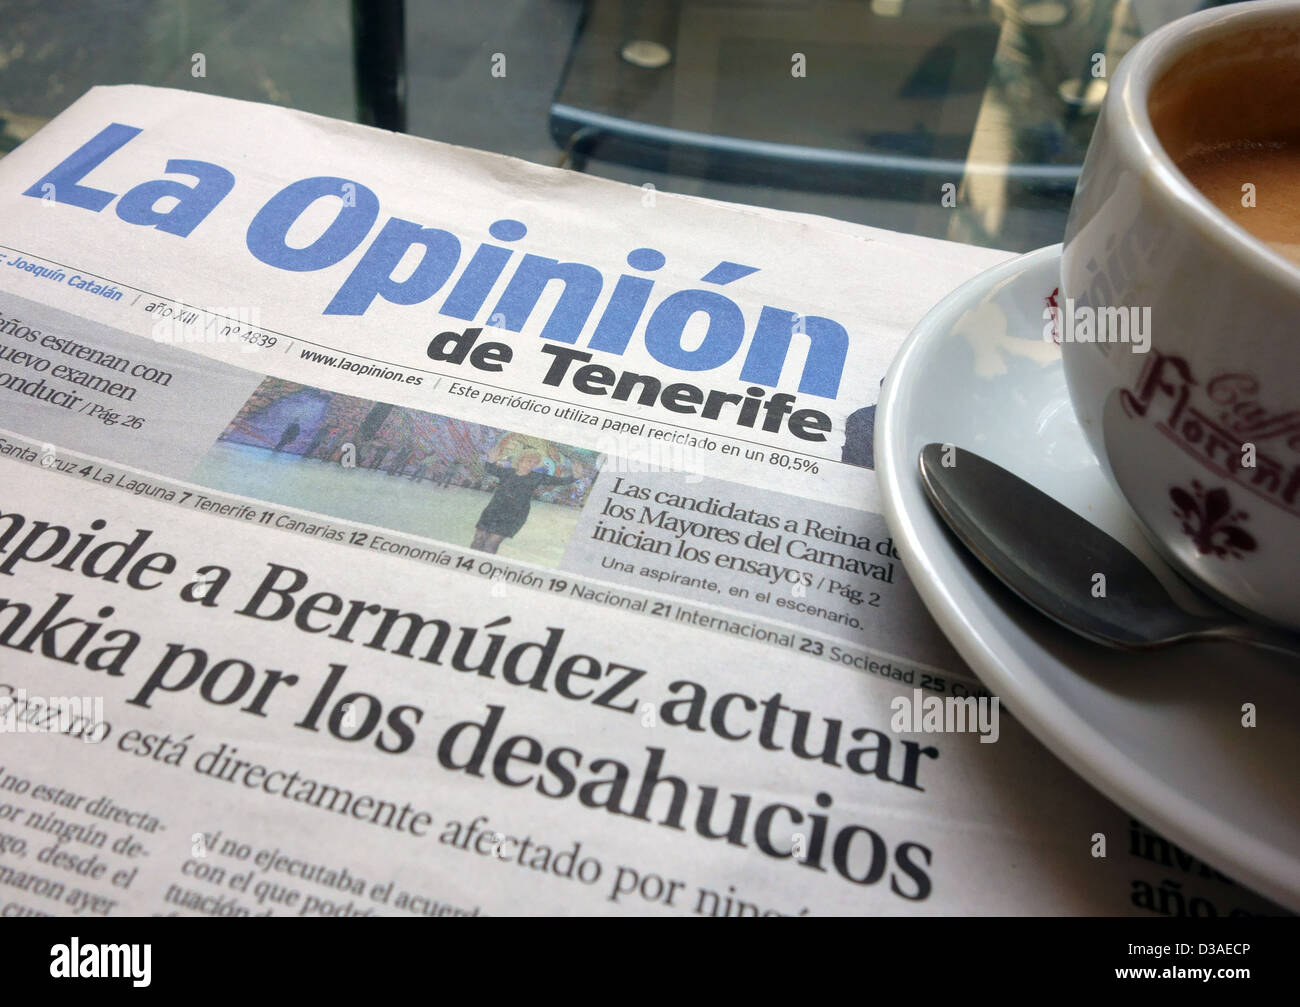 La Opinion is daily newspaper in Tenerife, Canary Islands - Stock Image